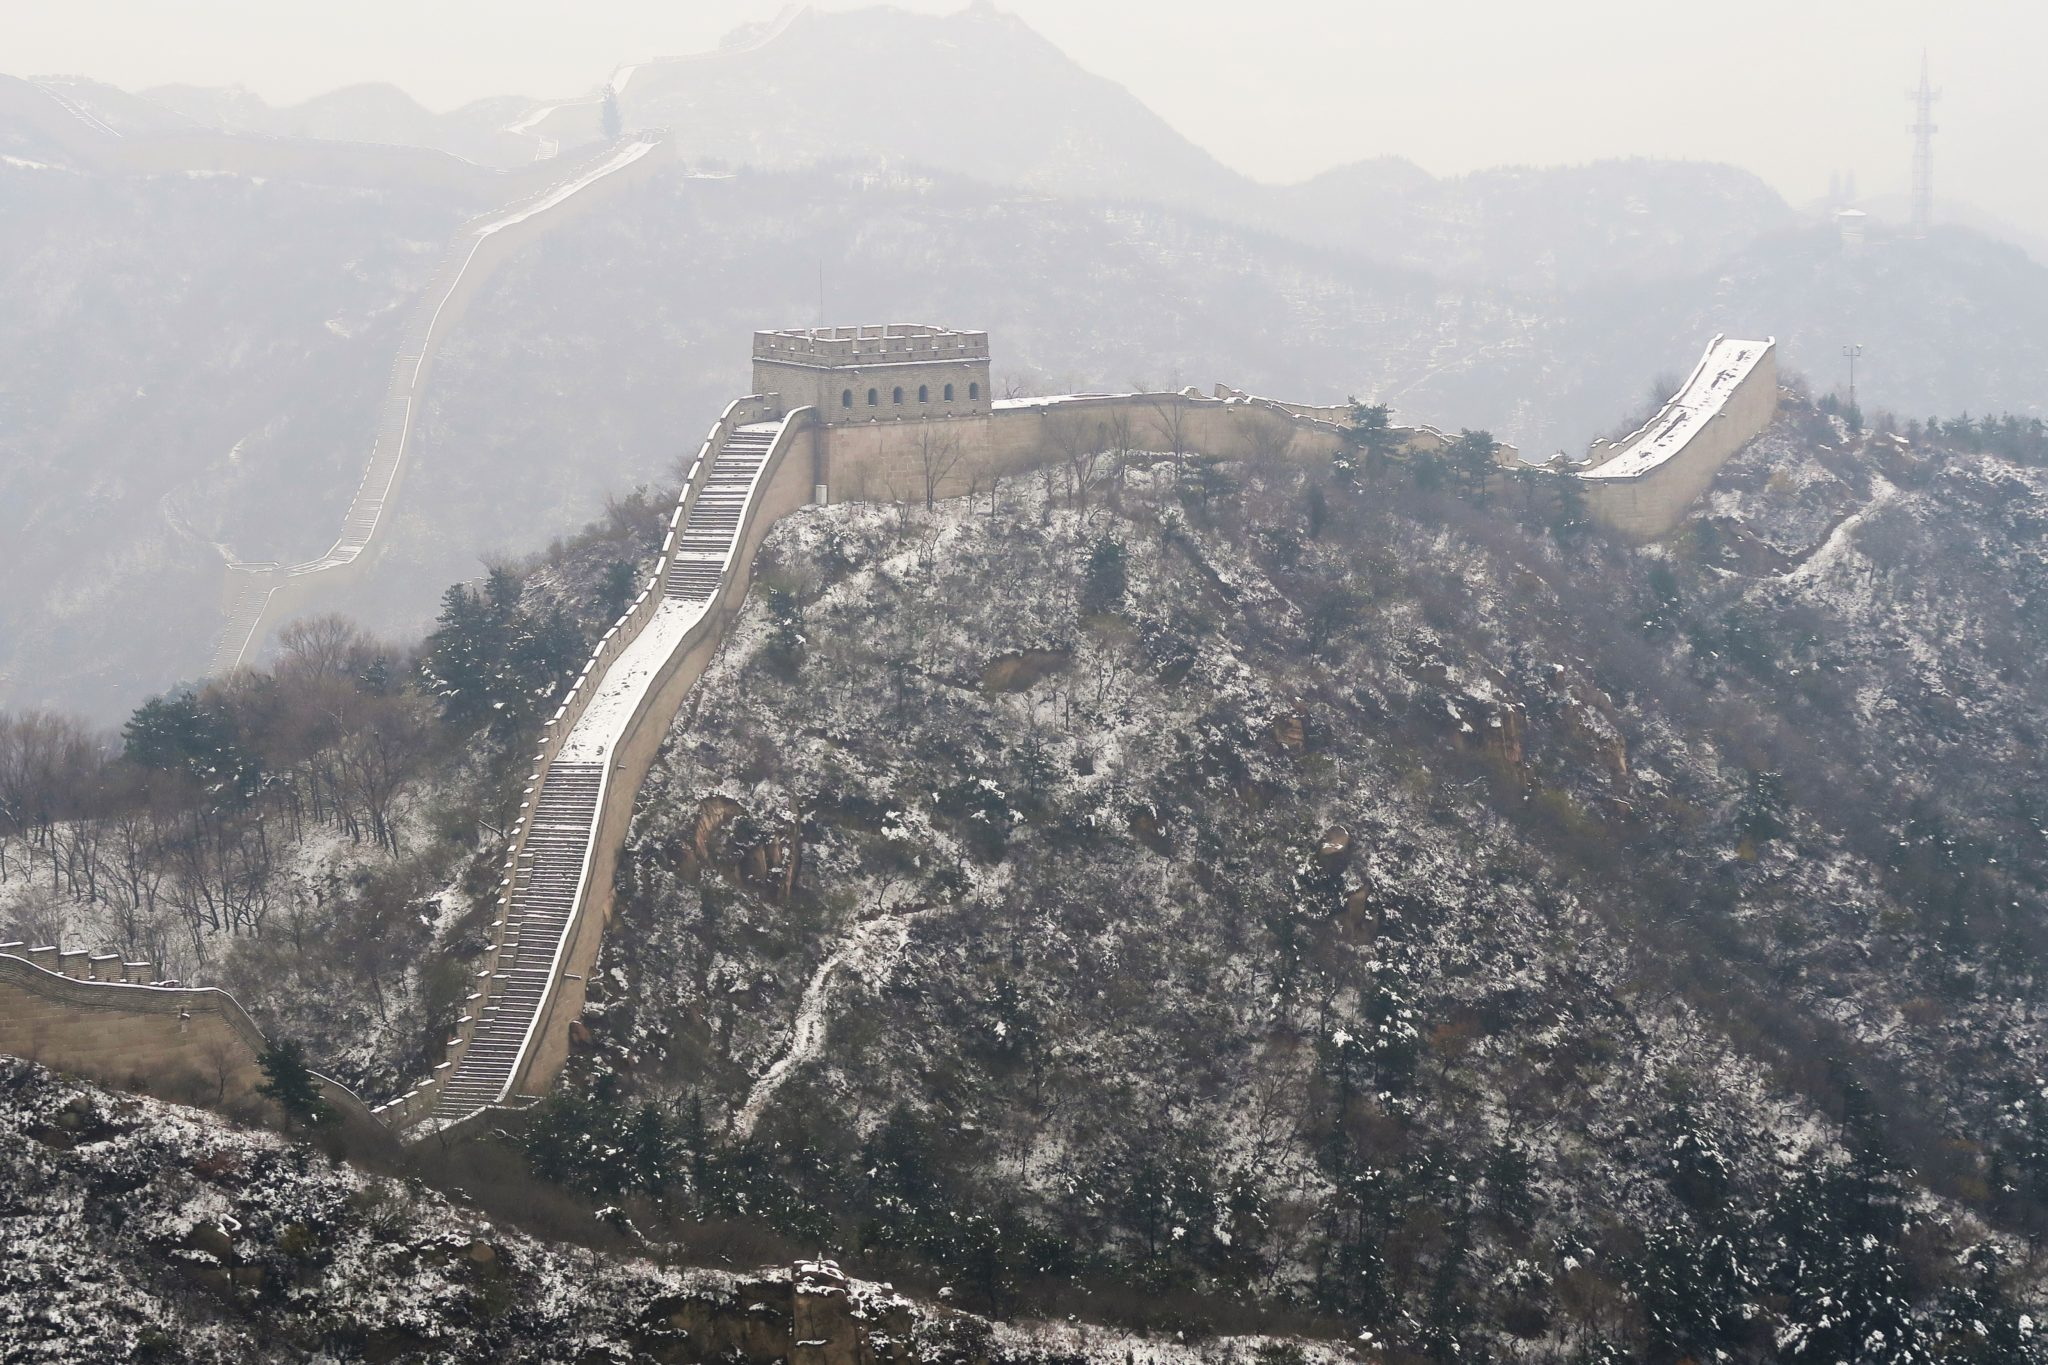 The Great Wall of China Roberto Poeti Chimica